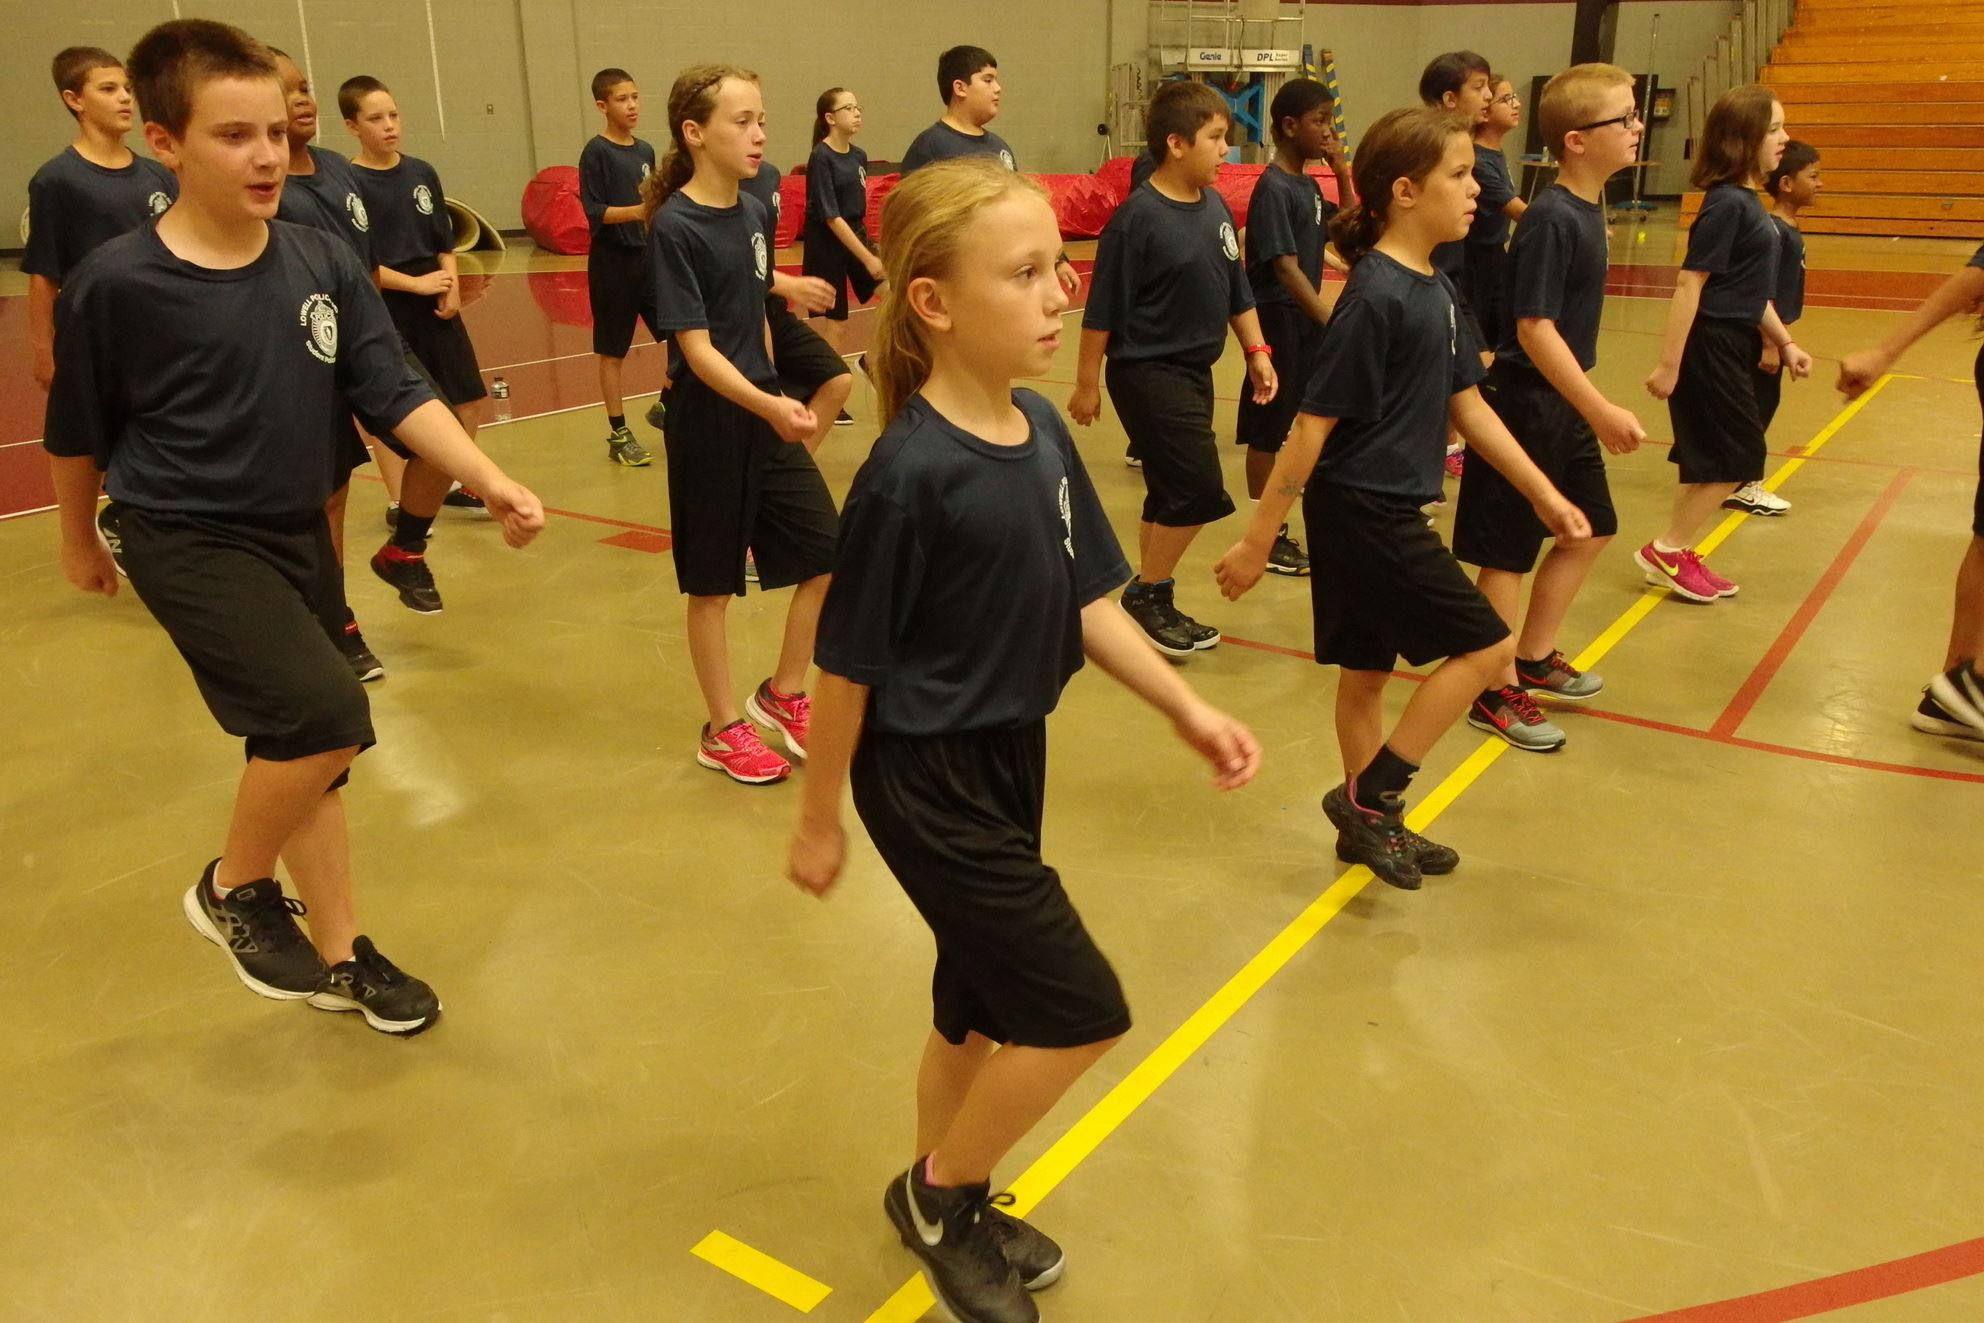 Student Police Academy Exercise